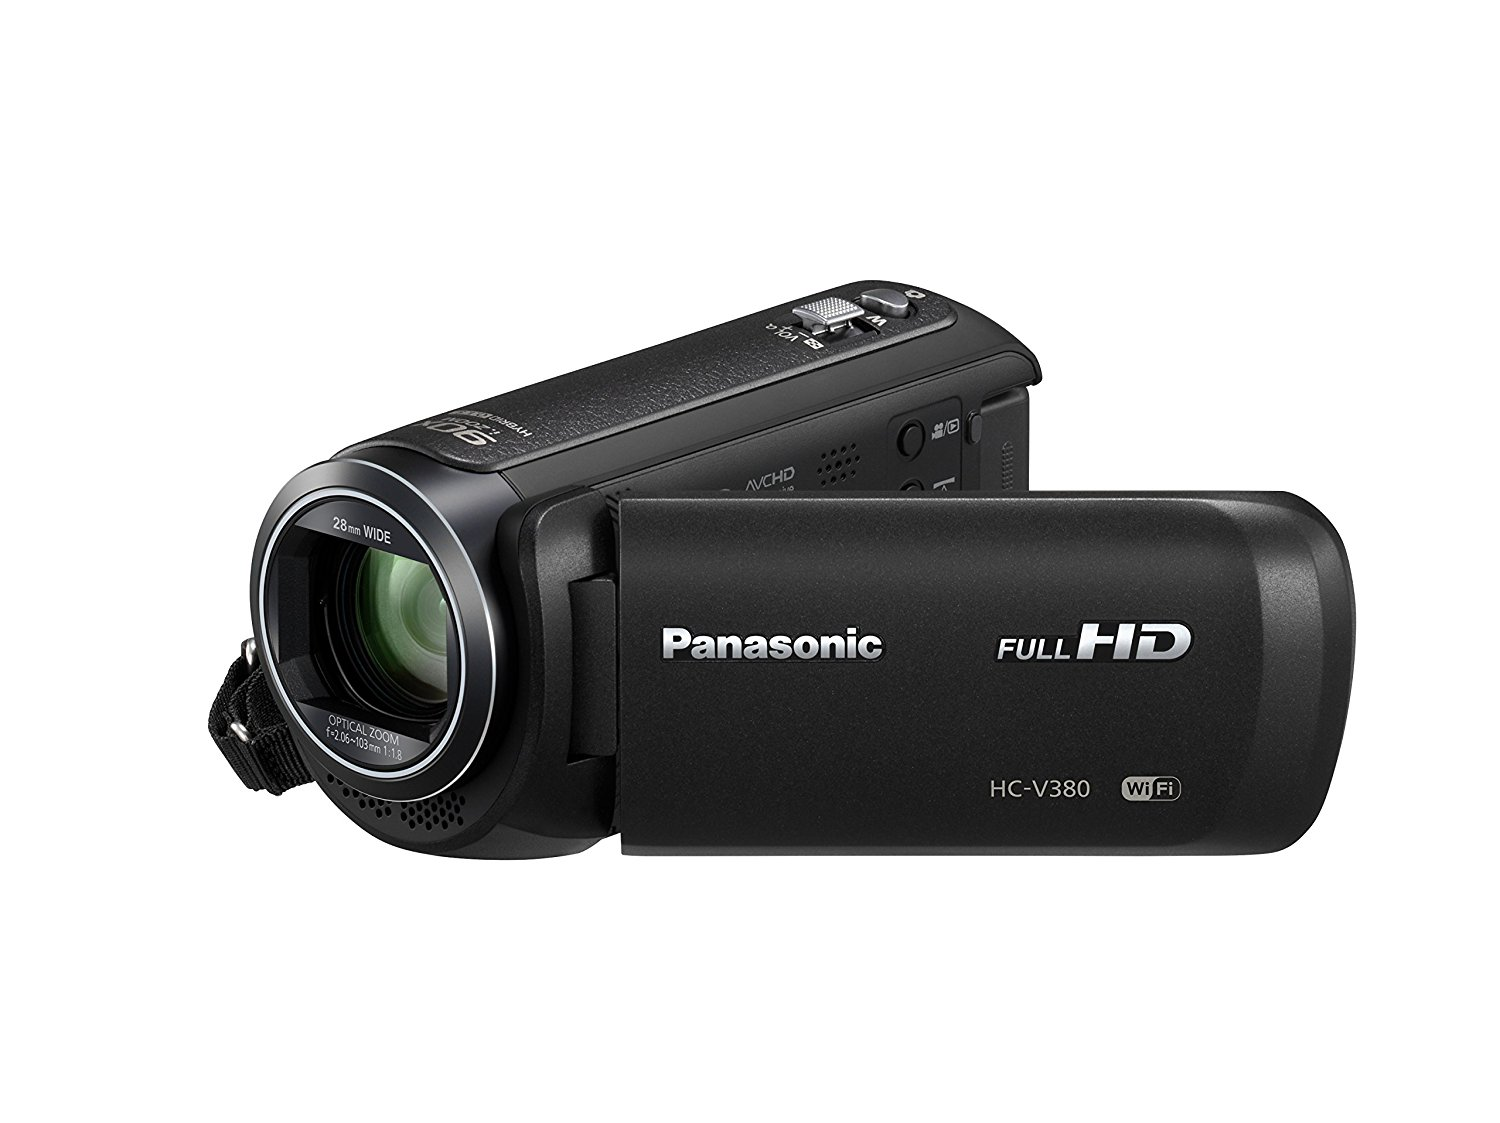 "Panasonic HC-V380EG-K Full HD Soporte de - Videocámara (2,51 MP, Mos BSI, 25,4/5,8 mm (1/5.8""), 1,67 MP, 2,2 MP, 50x)"